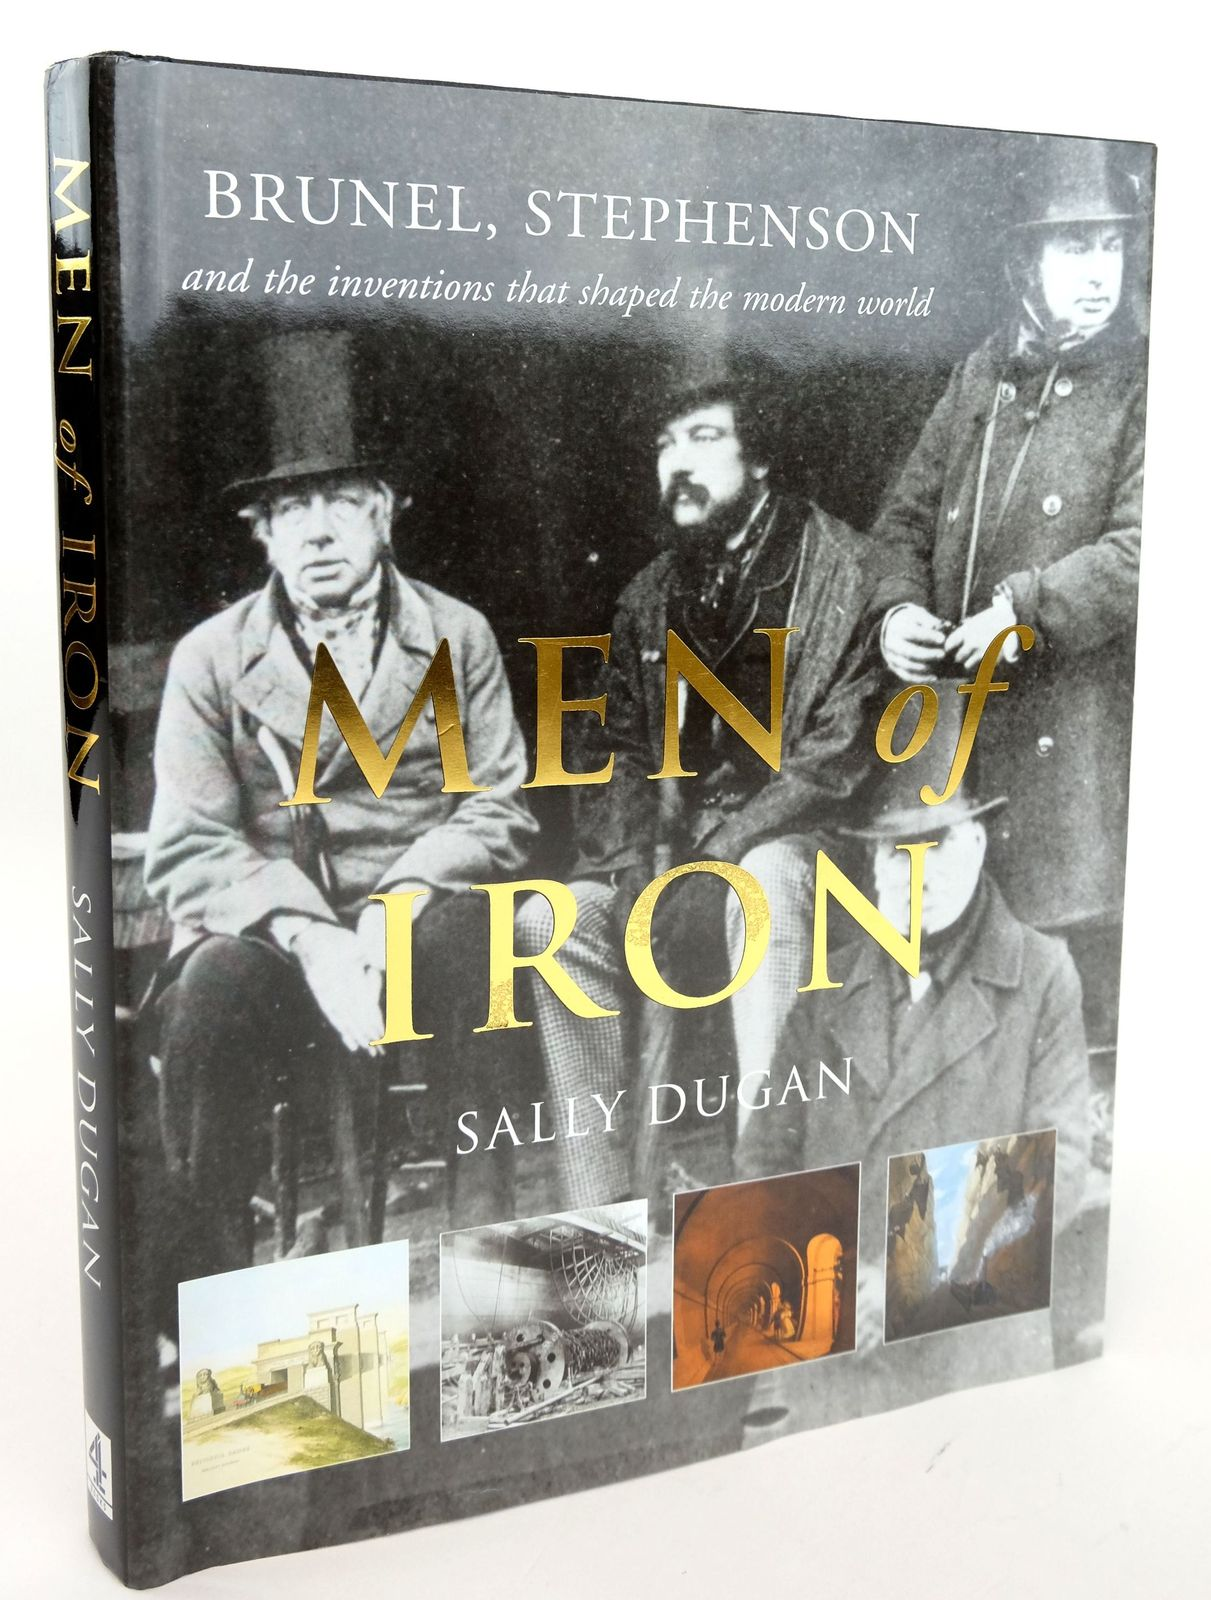 Photo of MEN OF IRON: BRUNEL, STEPHENSON AND THE INVENTIONS THAT SHAPED THE MODERN WORLD written by Dugan, Sally published by Channel Four Books (STOCK CODE: 1820115)  for sale by Stella & Rose's Books